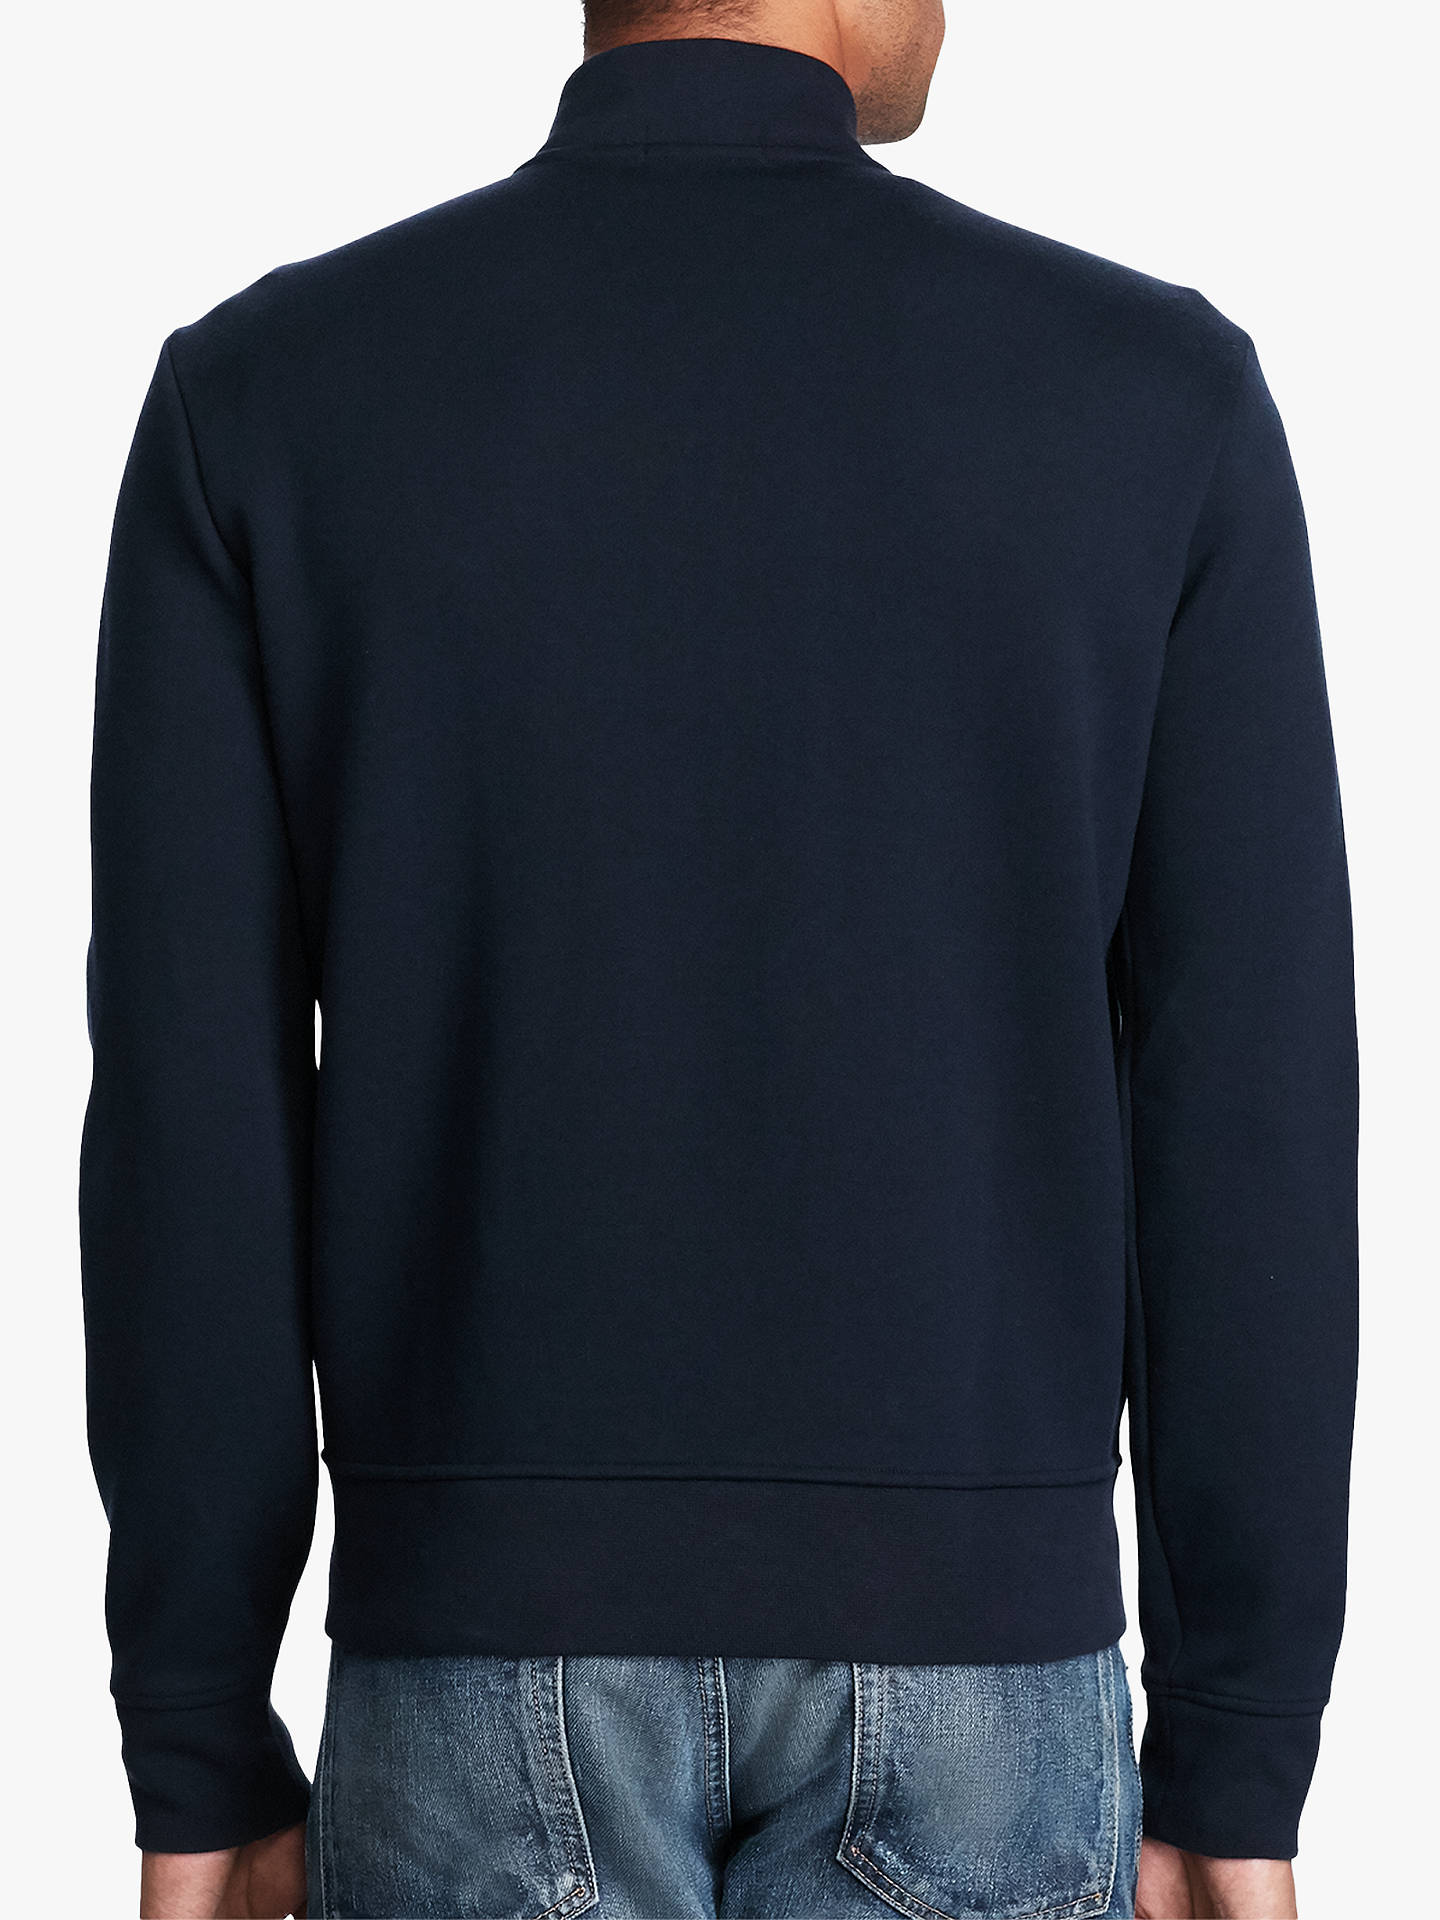 Buy Polo Ralph Lauren Double-Knit Bomber Jacket, Aviator Navy, S Online at johnlewis.com